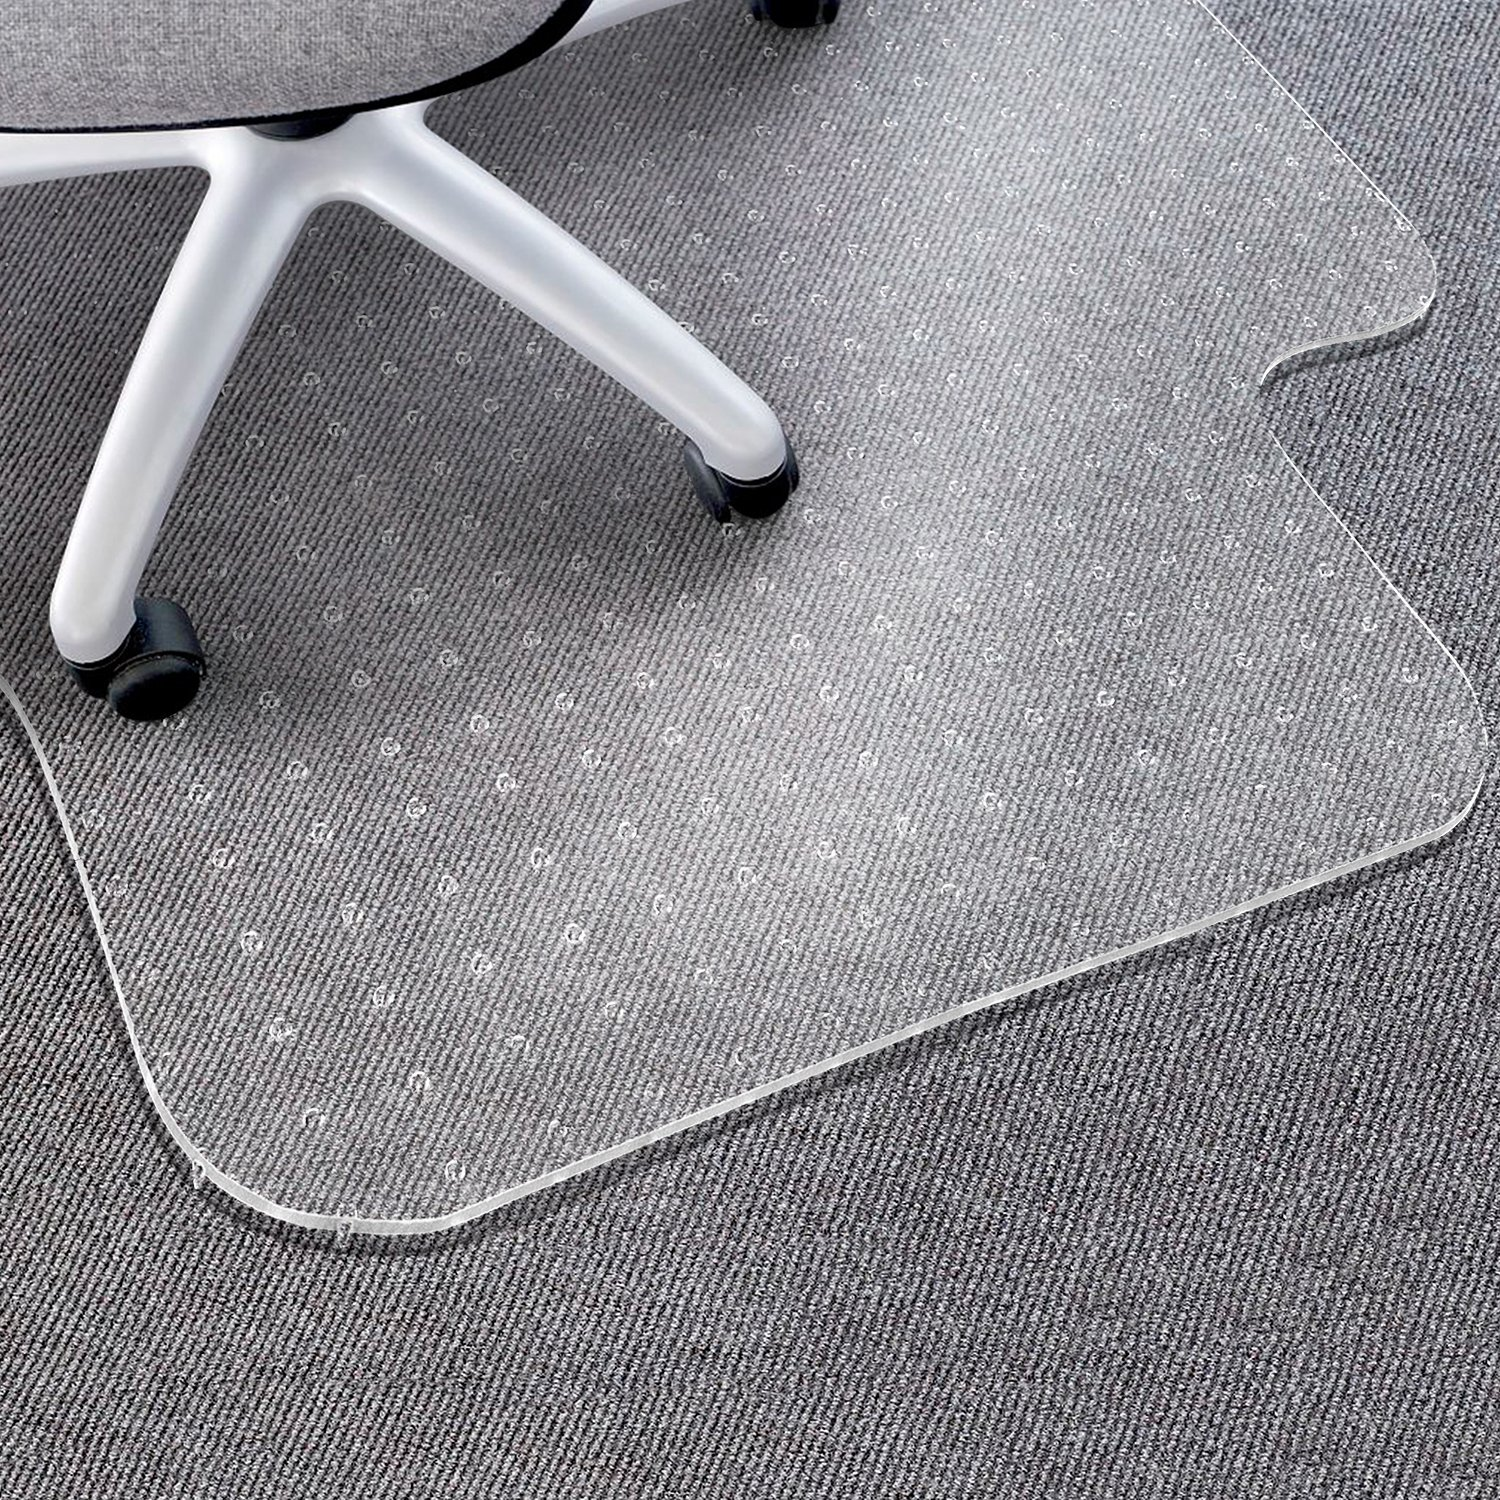 Matladin Heavy Duty PVC Chair Mat, 1/8 inches Thick Transparent Carpet Chair Mat, for Low Standard Medium Flooring Protector for Office by Matladin